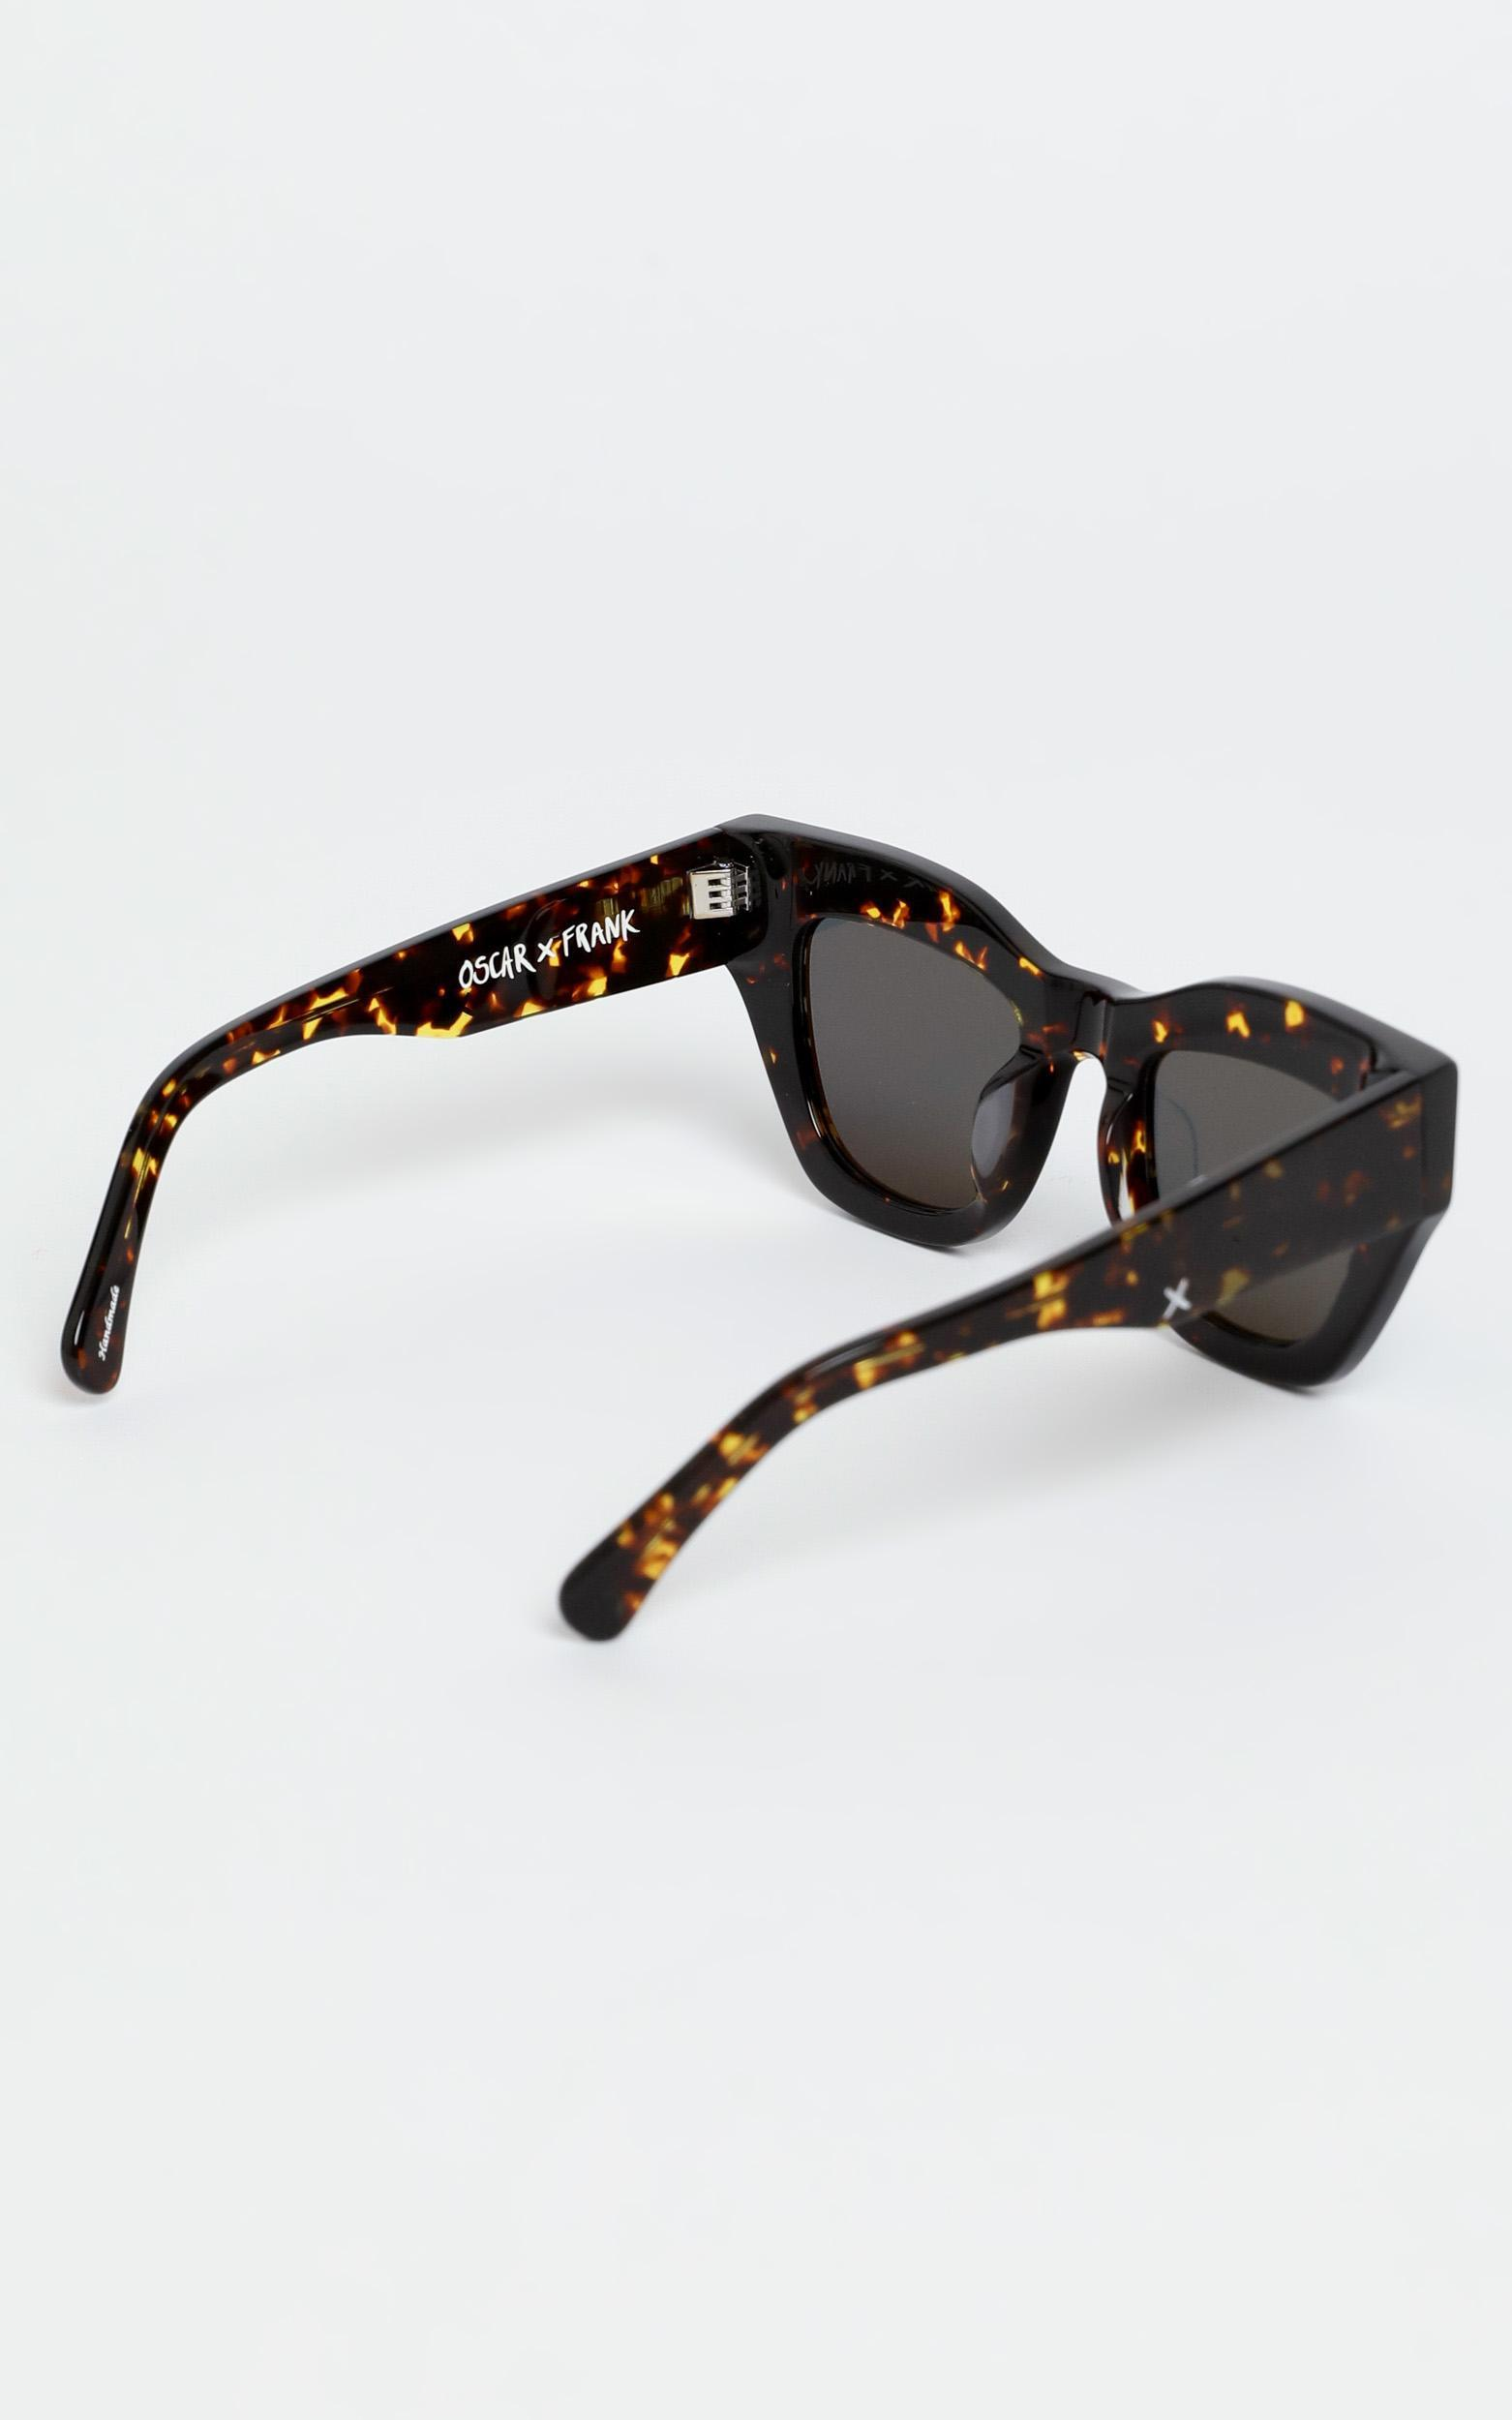 Oscar & Frank - Haarlem Sunglasses in Dark Tort, Brown, hi-res image number null